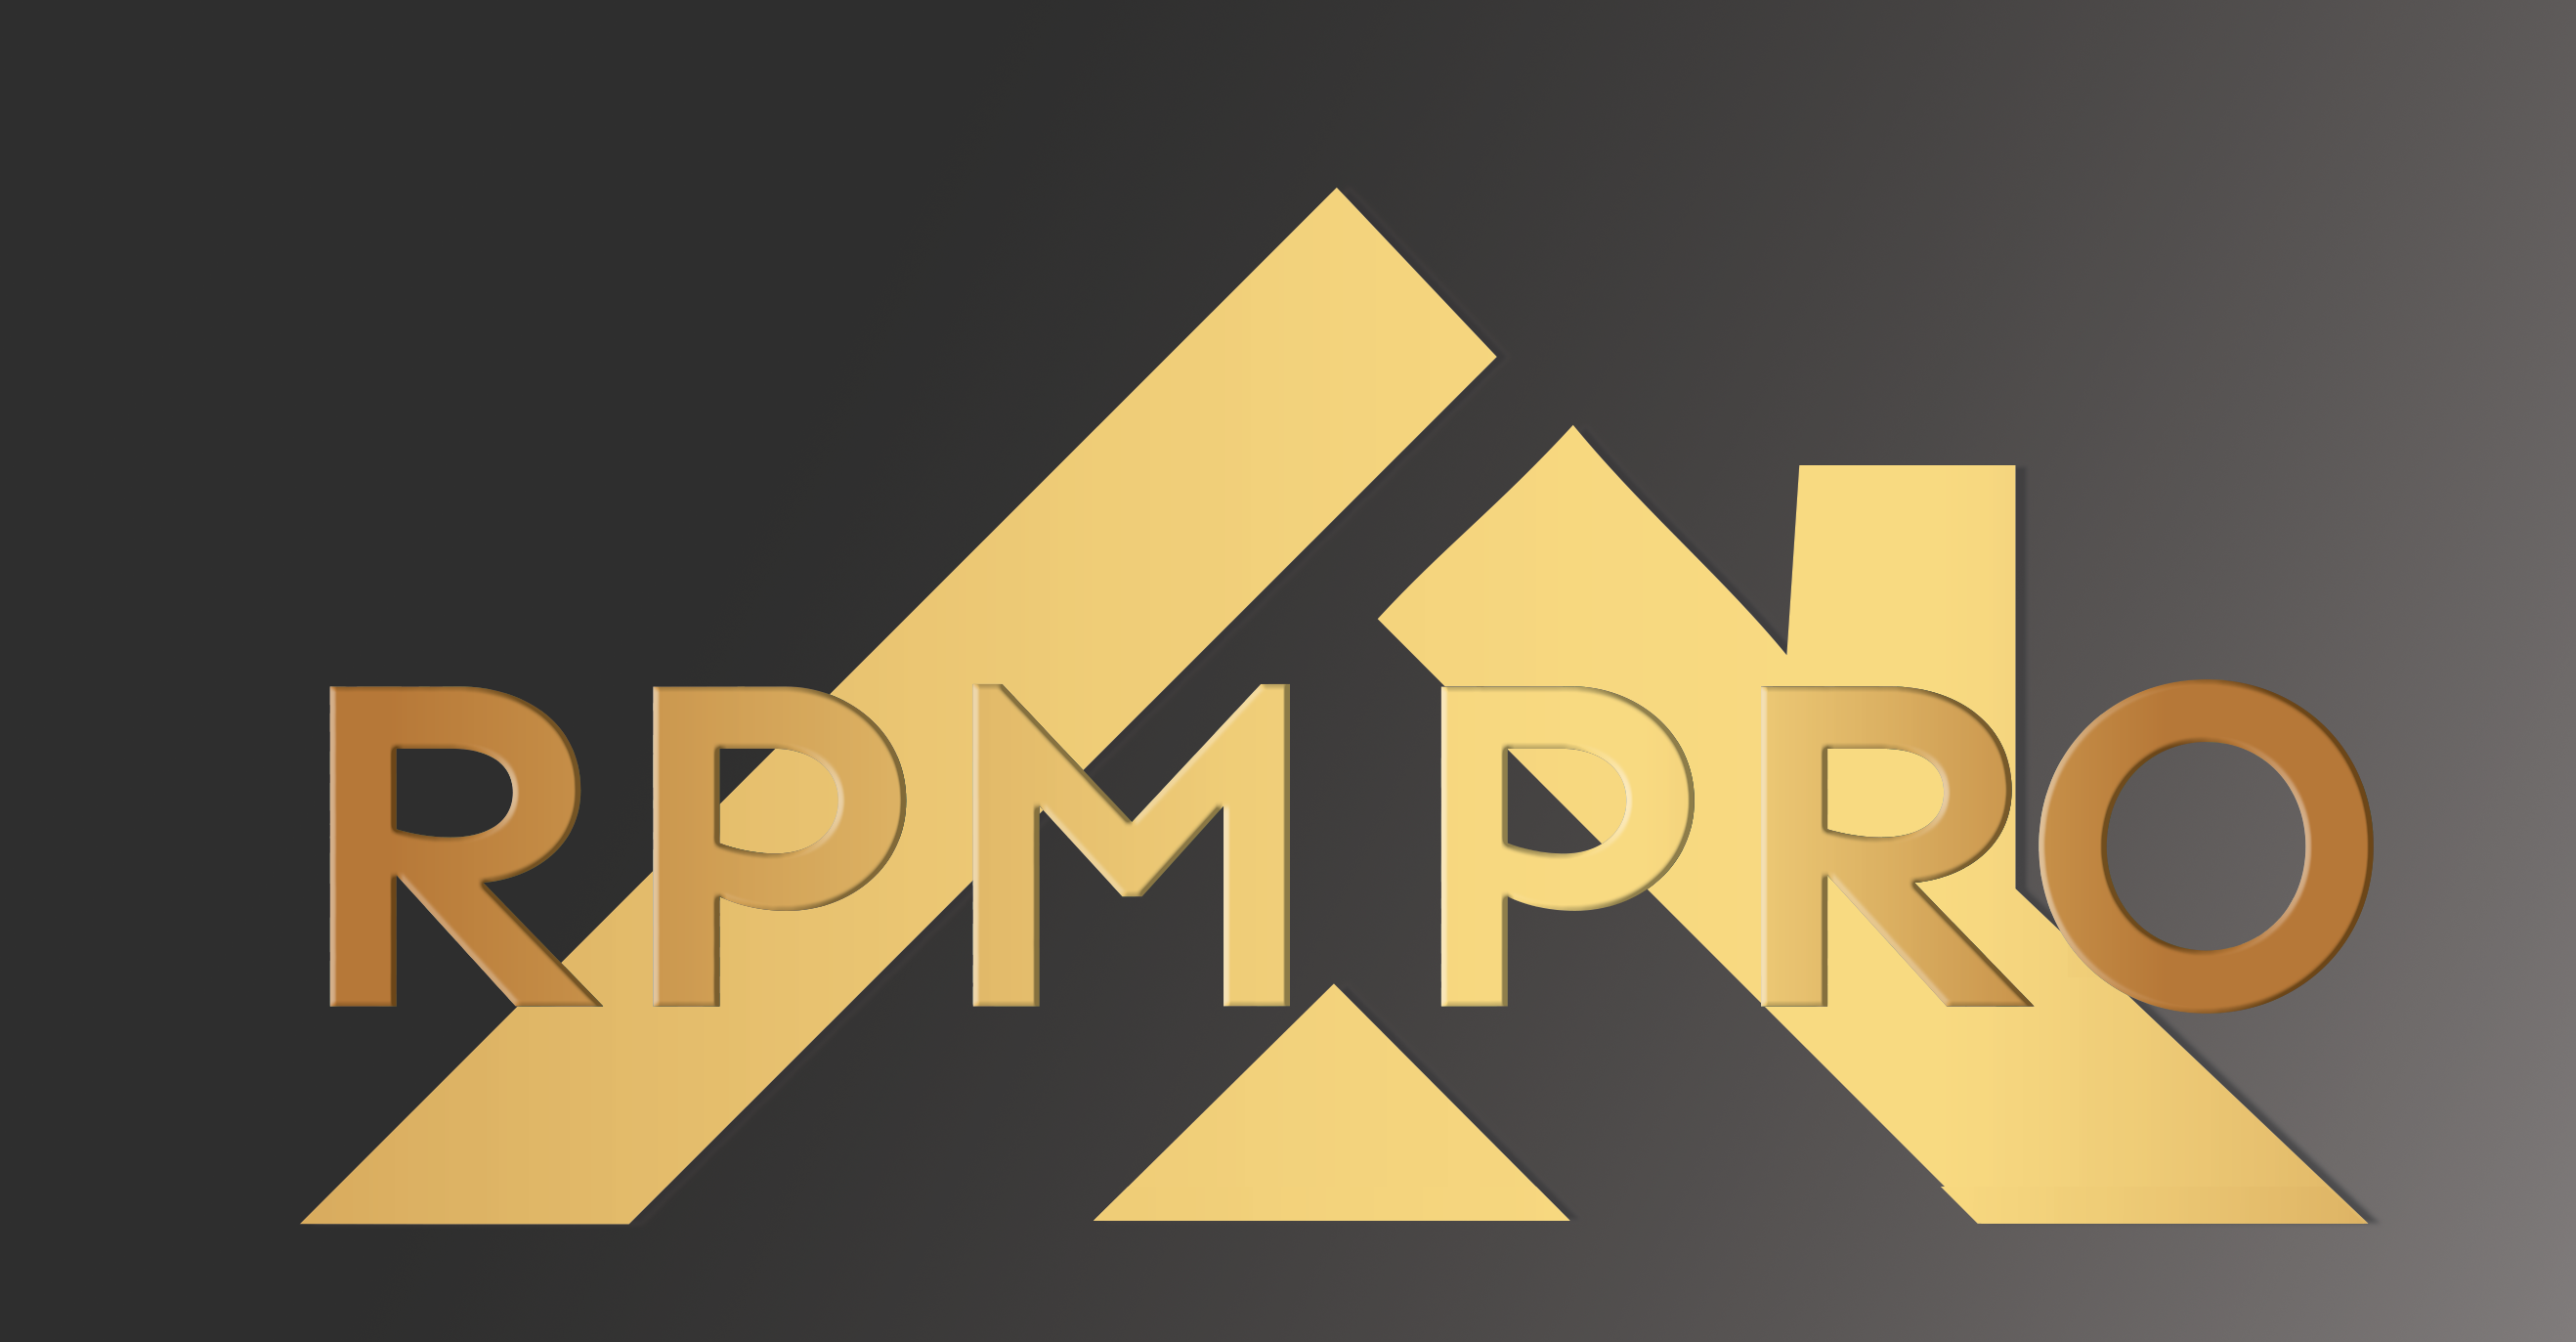 RPM Pro V3 - Coming Soon! Image